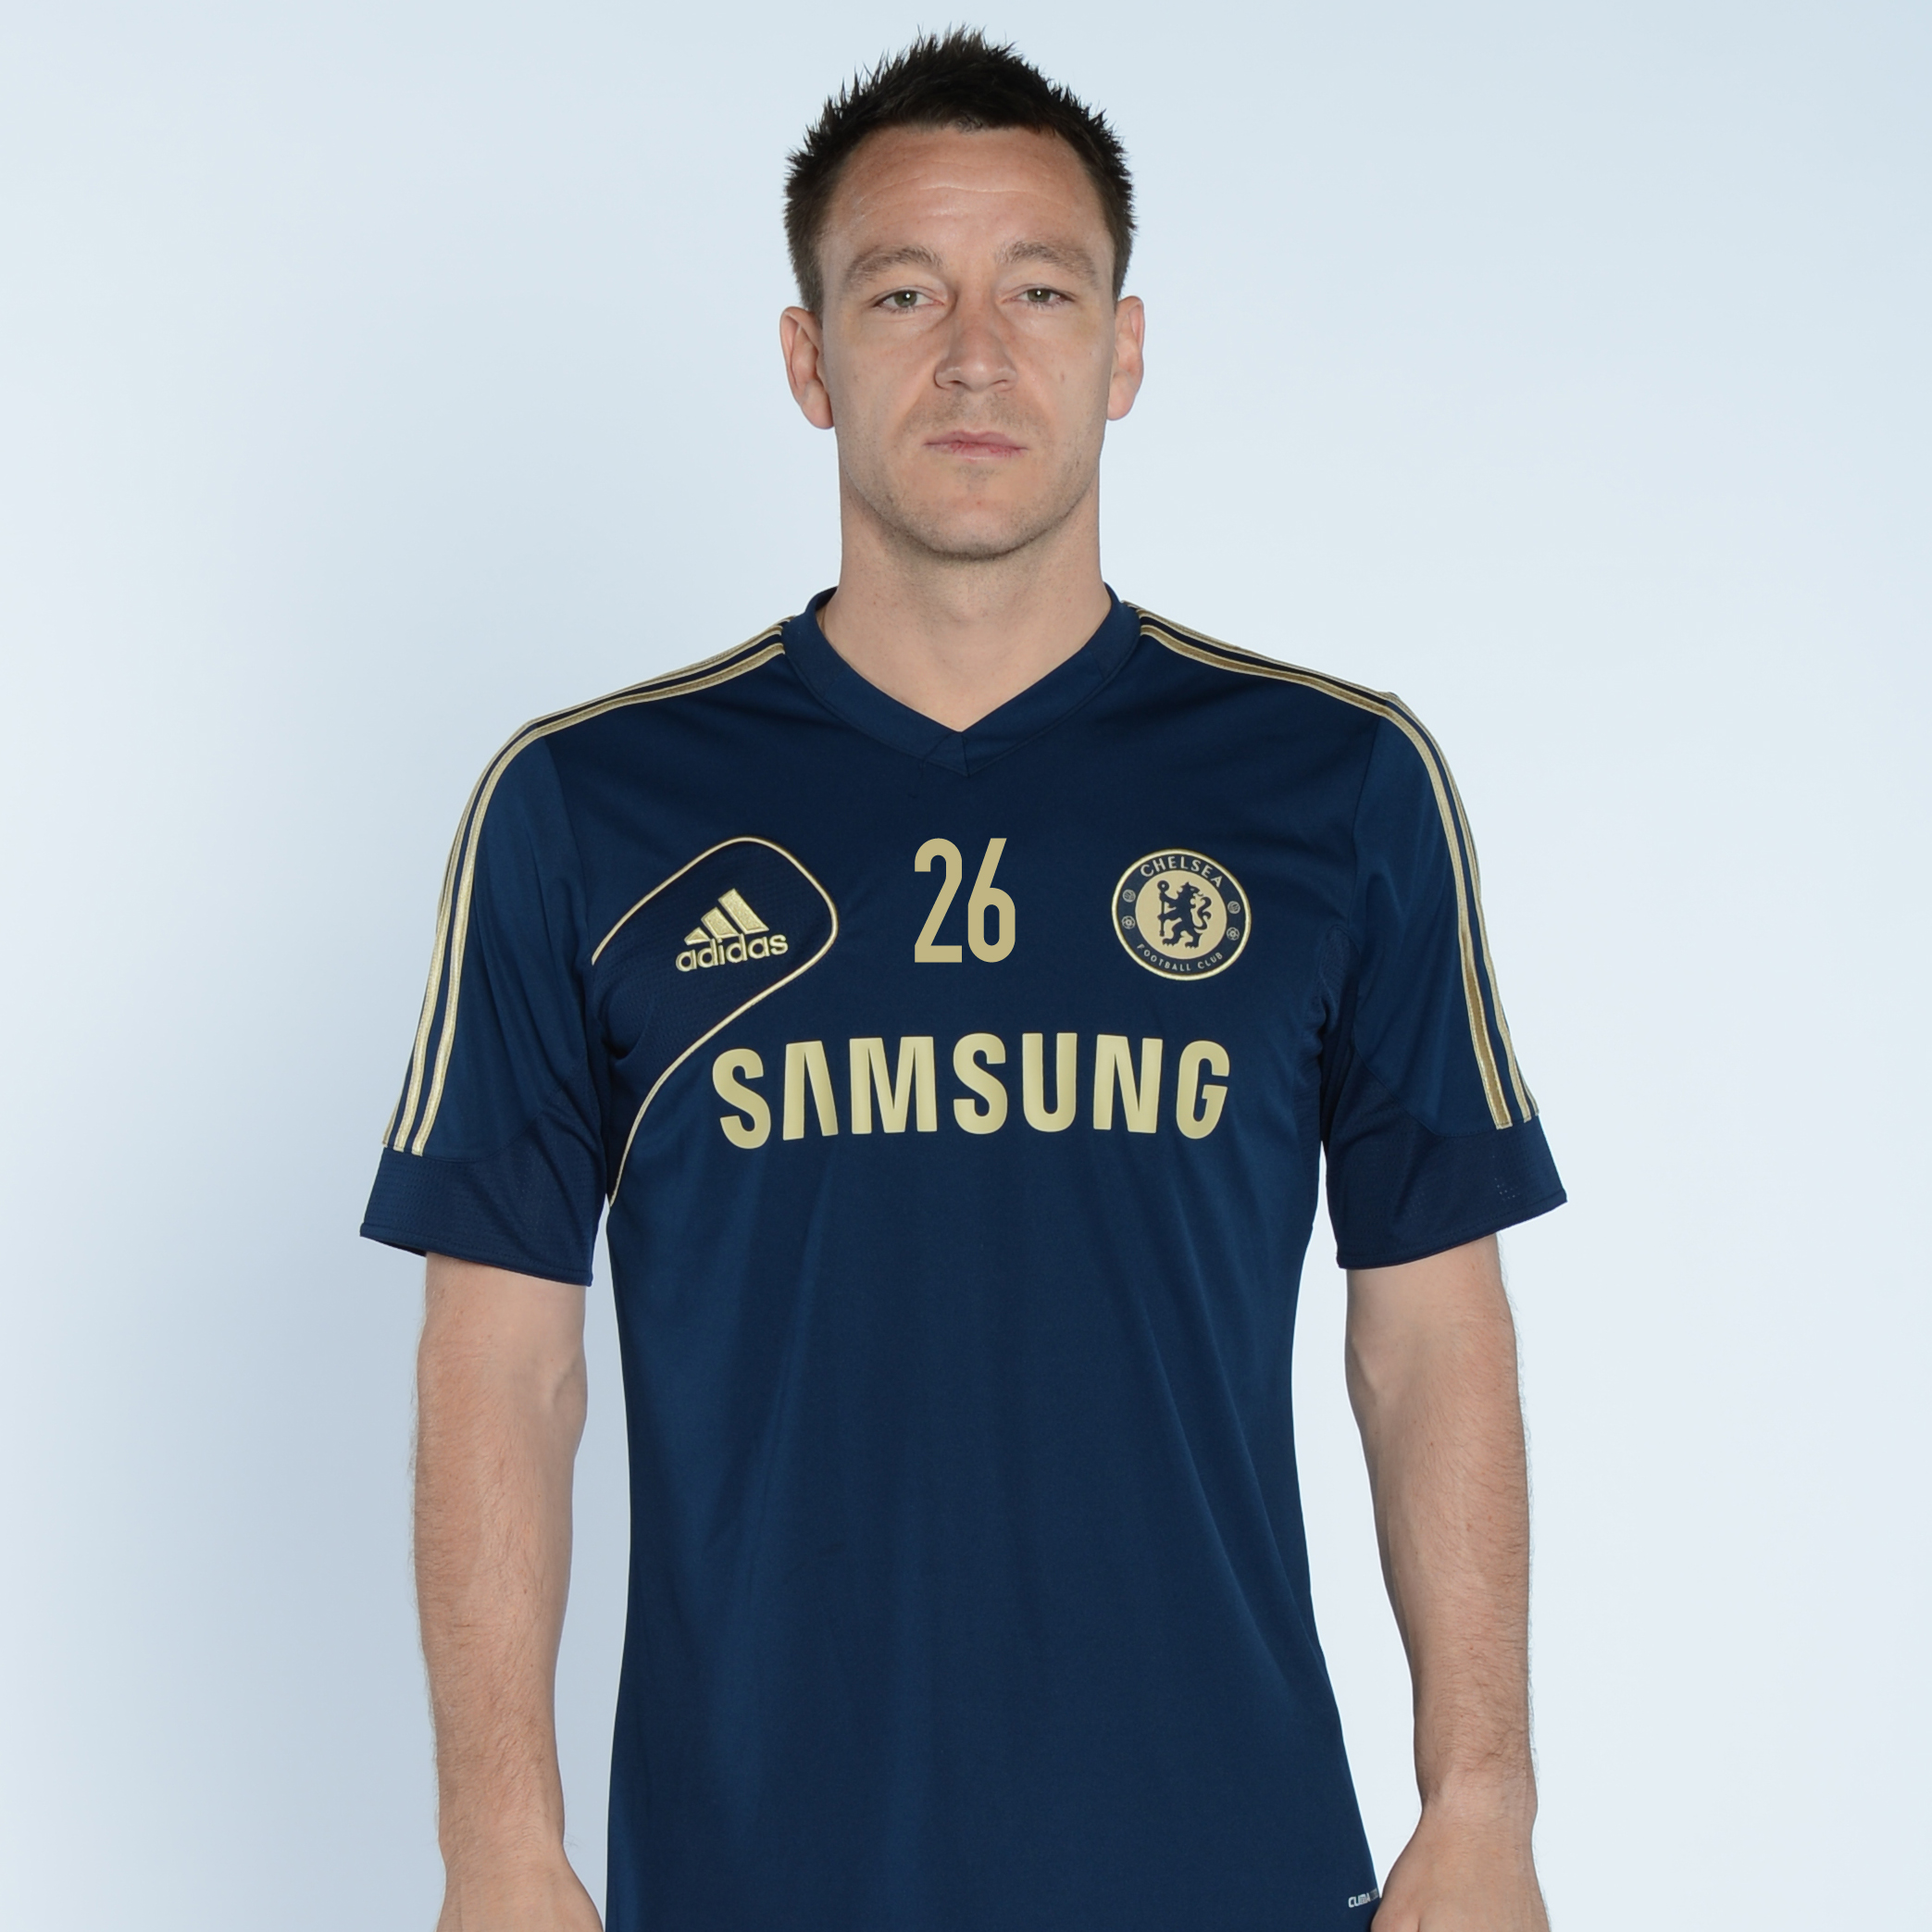 adidas Chelsea Training T-Shirt - Collegiate Navy/Light Football Gold